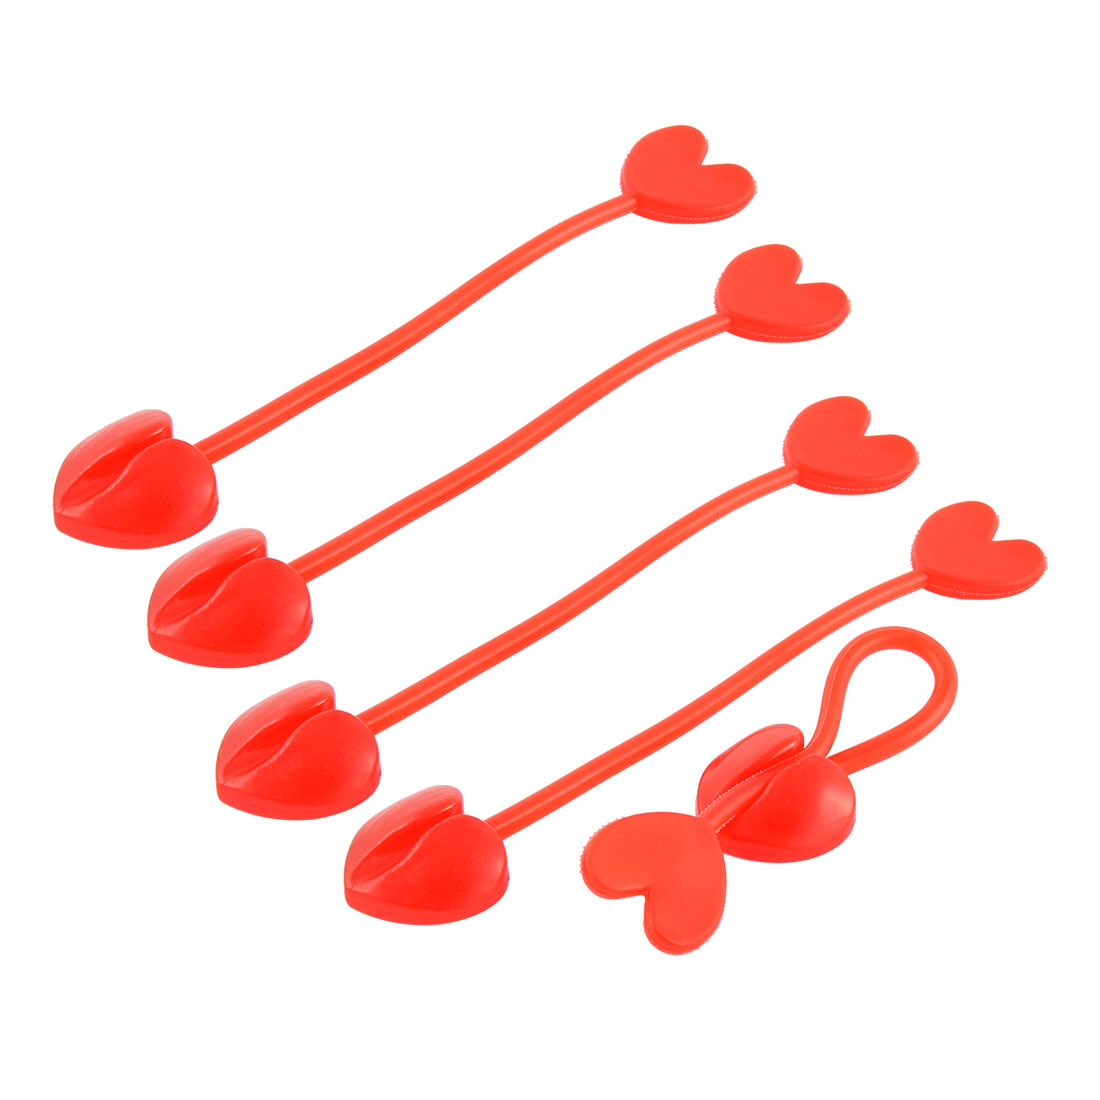 Household Silicone Heart Design Tip Flexible Cable Tie Organizer Wrap Red 5pcs